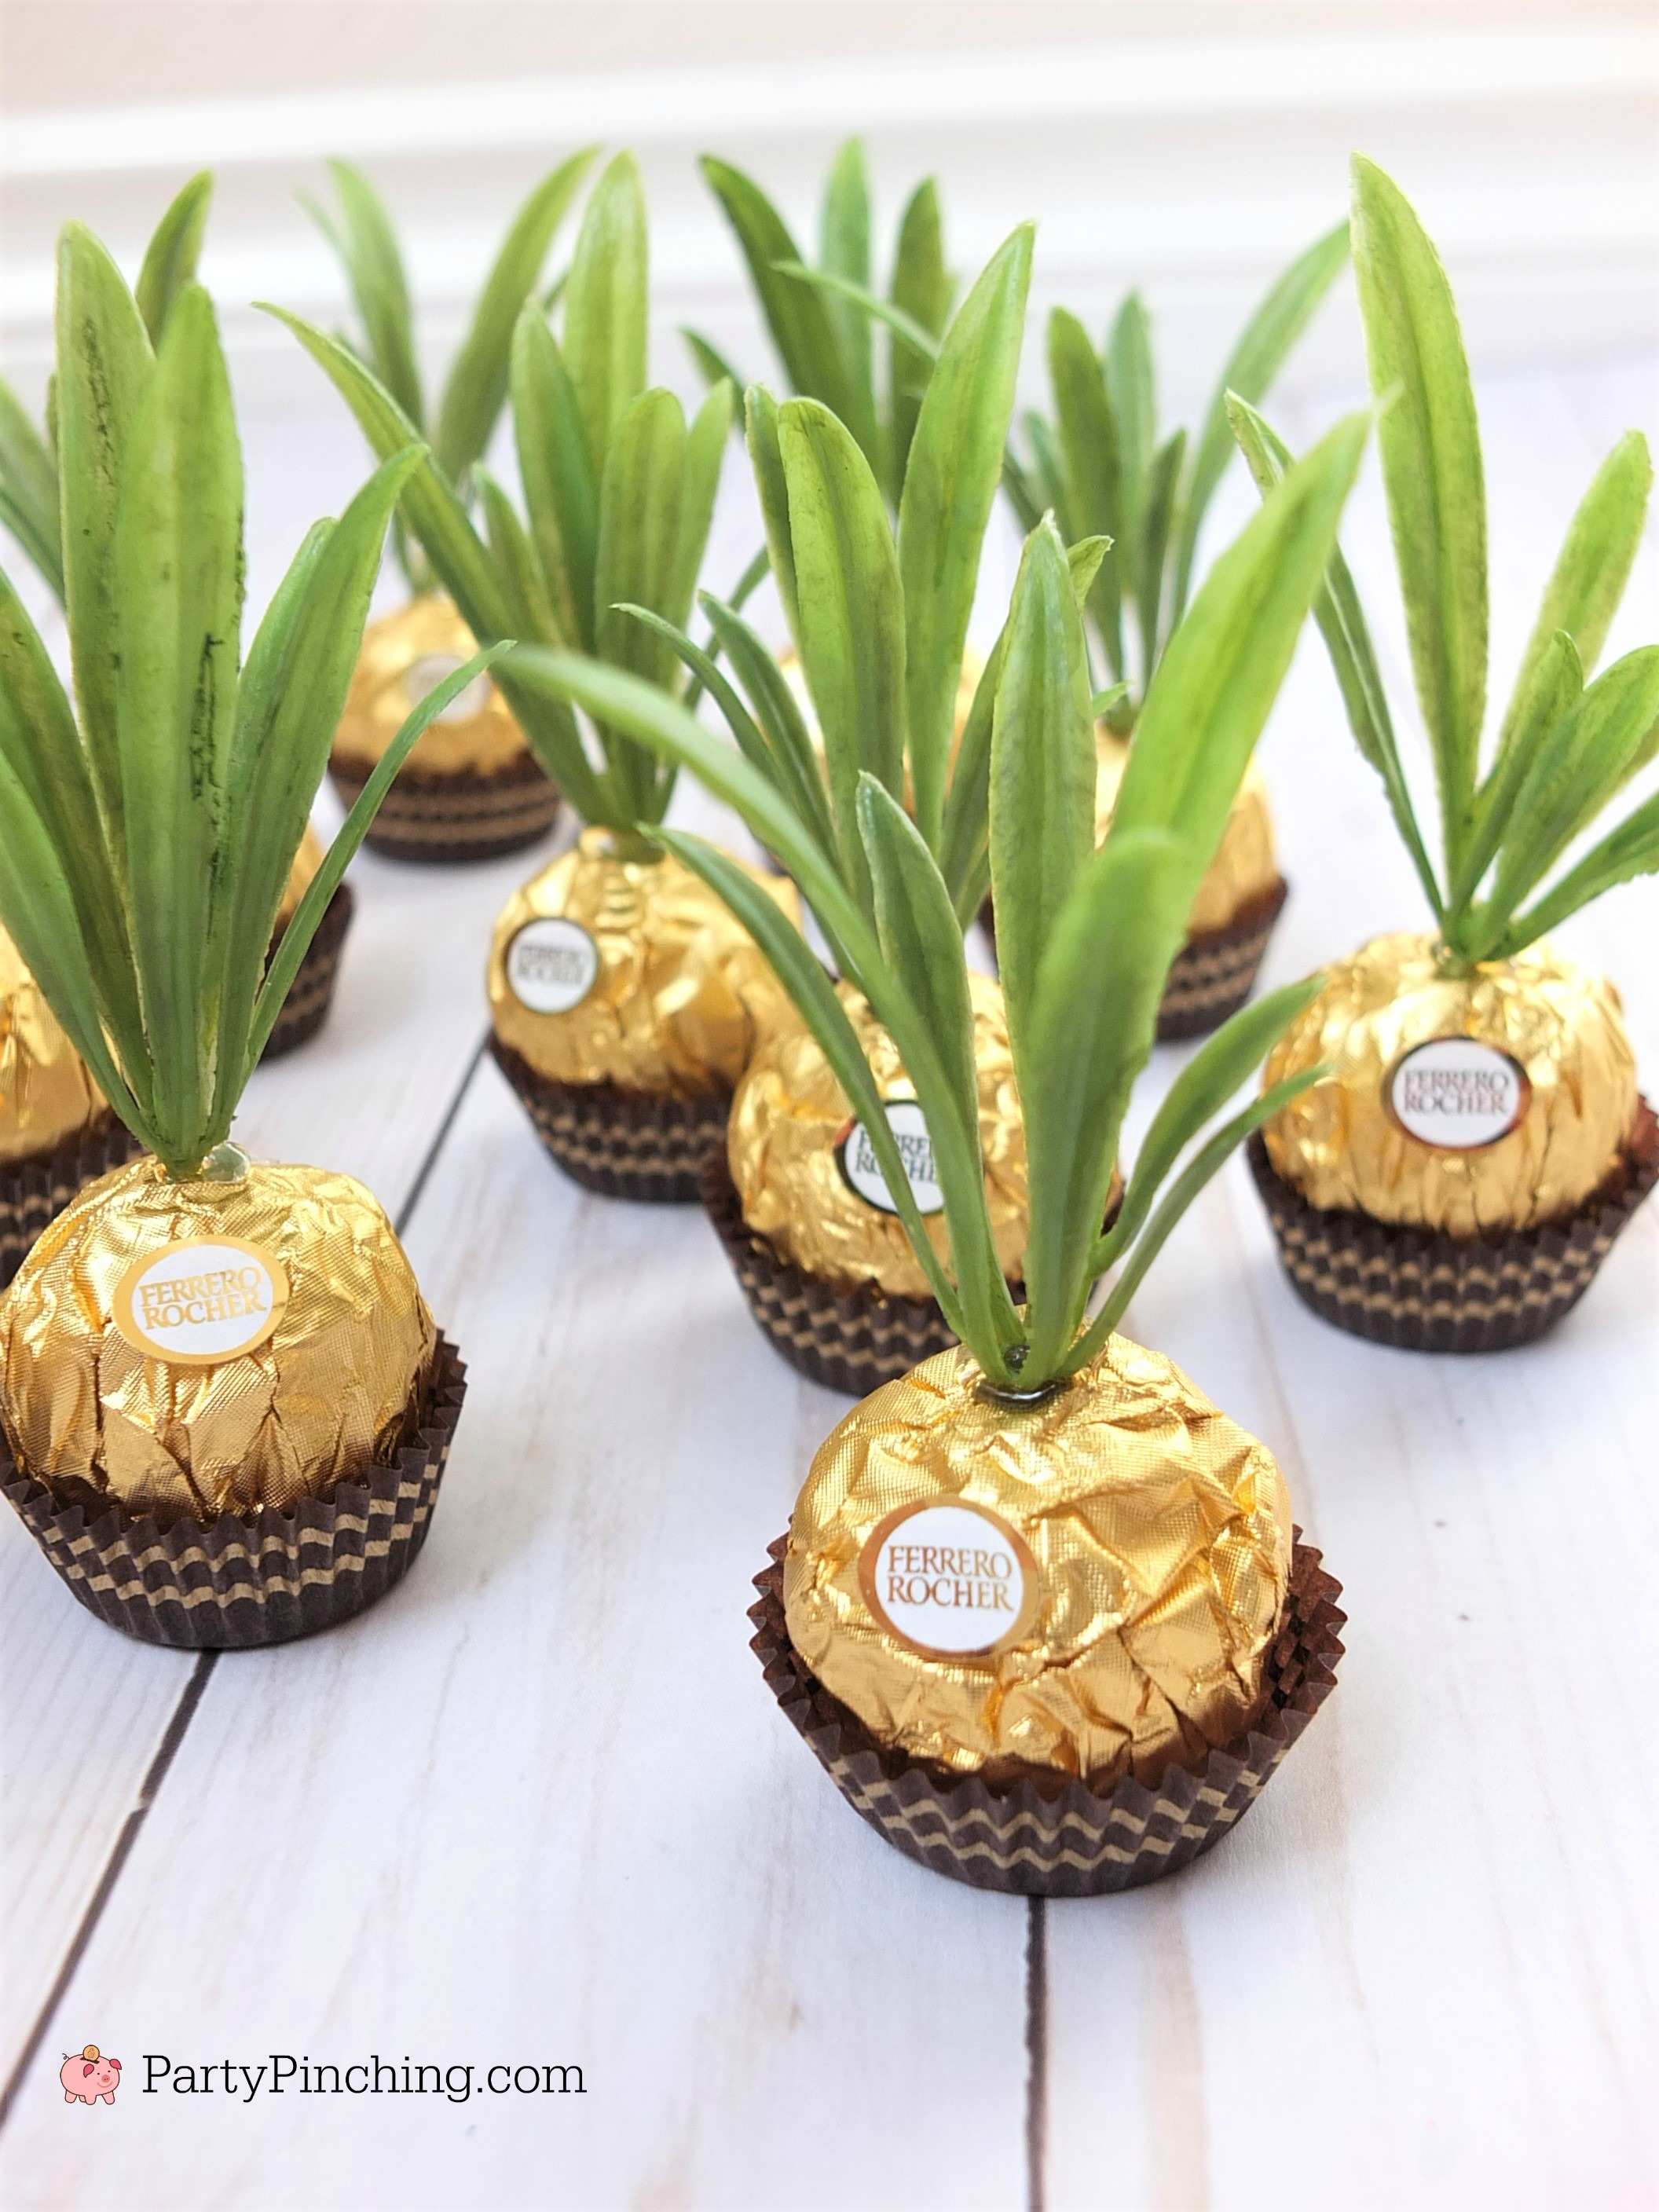 Ferrero Rocher Pineapple Candy Favors Are Adorable And So